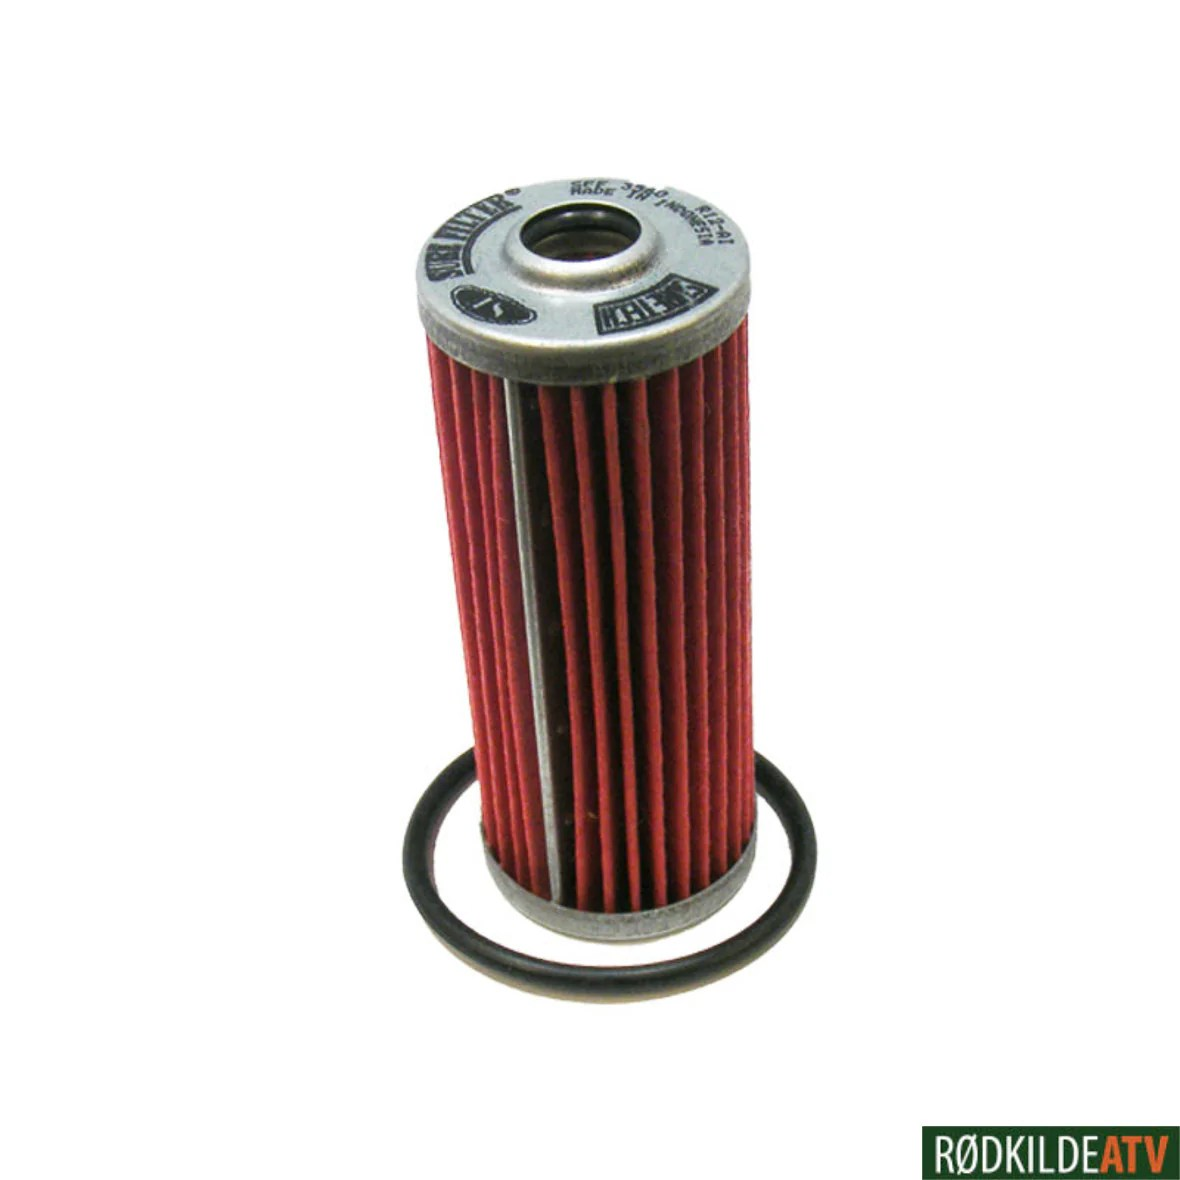 hight resolution of 170 5070 fuel filter jd gator 855d m801101 mule prox 49019 0026 r dkilde atv